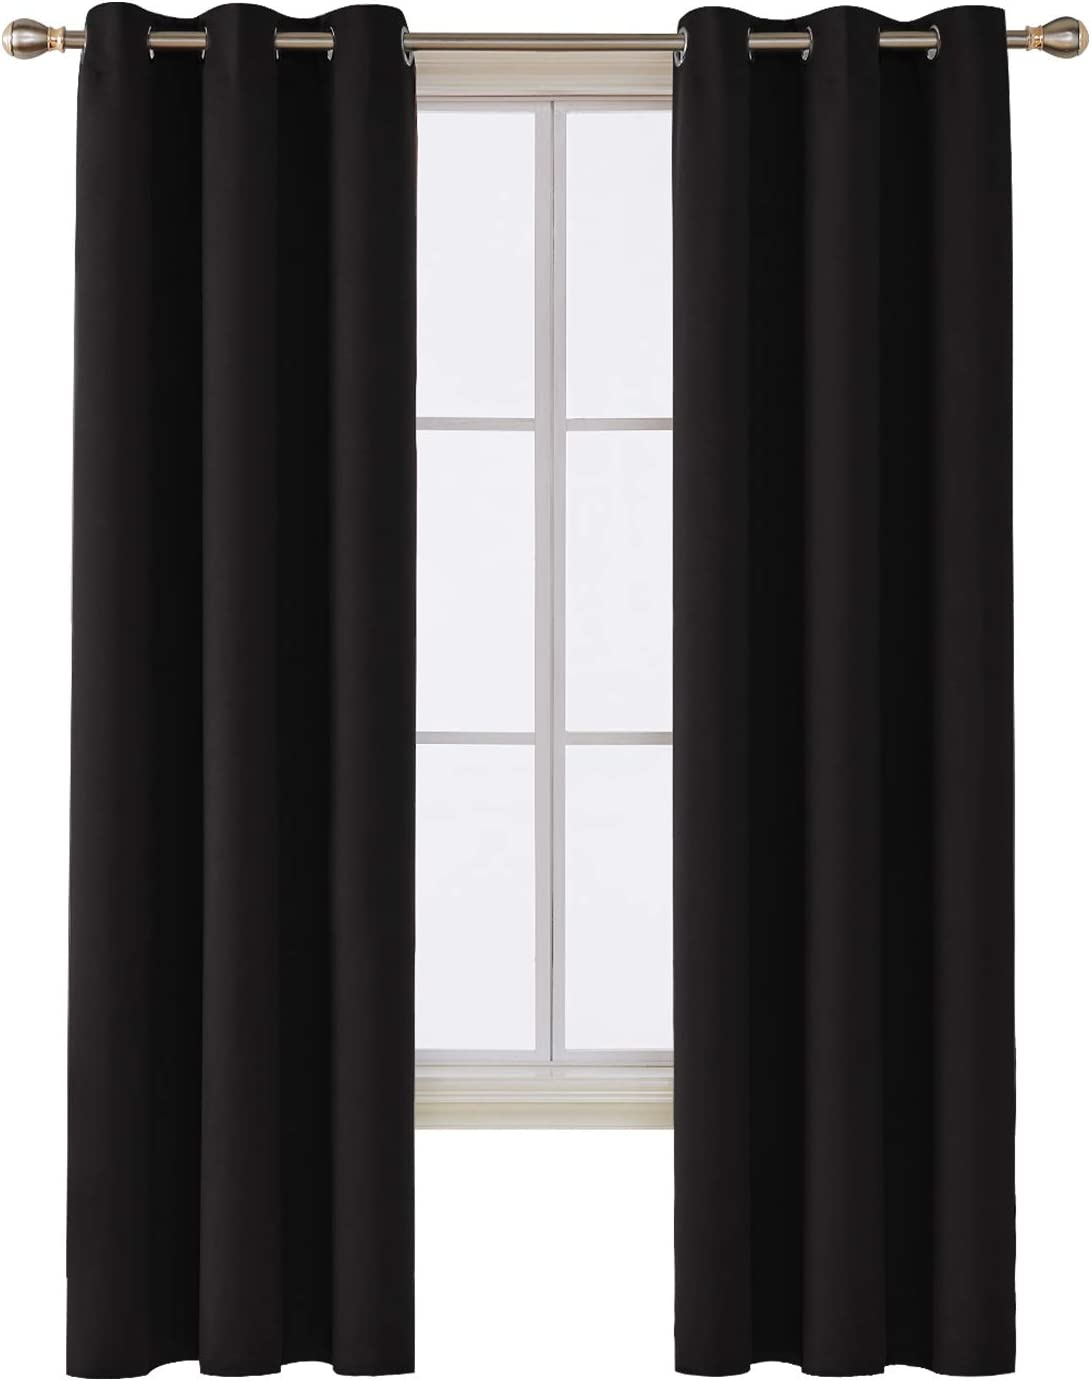 Deconovo Room Darkening Thermal Insulated Blackout Grommet Window Curtain for Bedroom, Black,42x84-inch,1 Panel